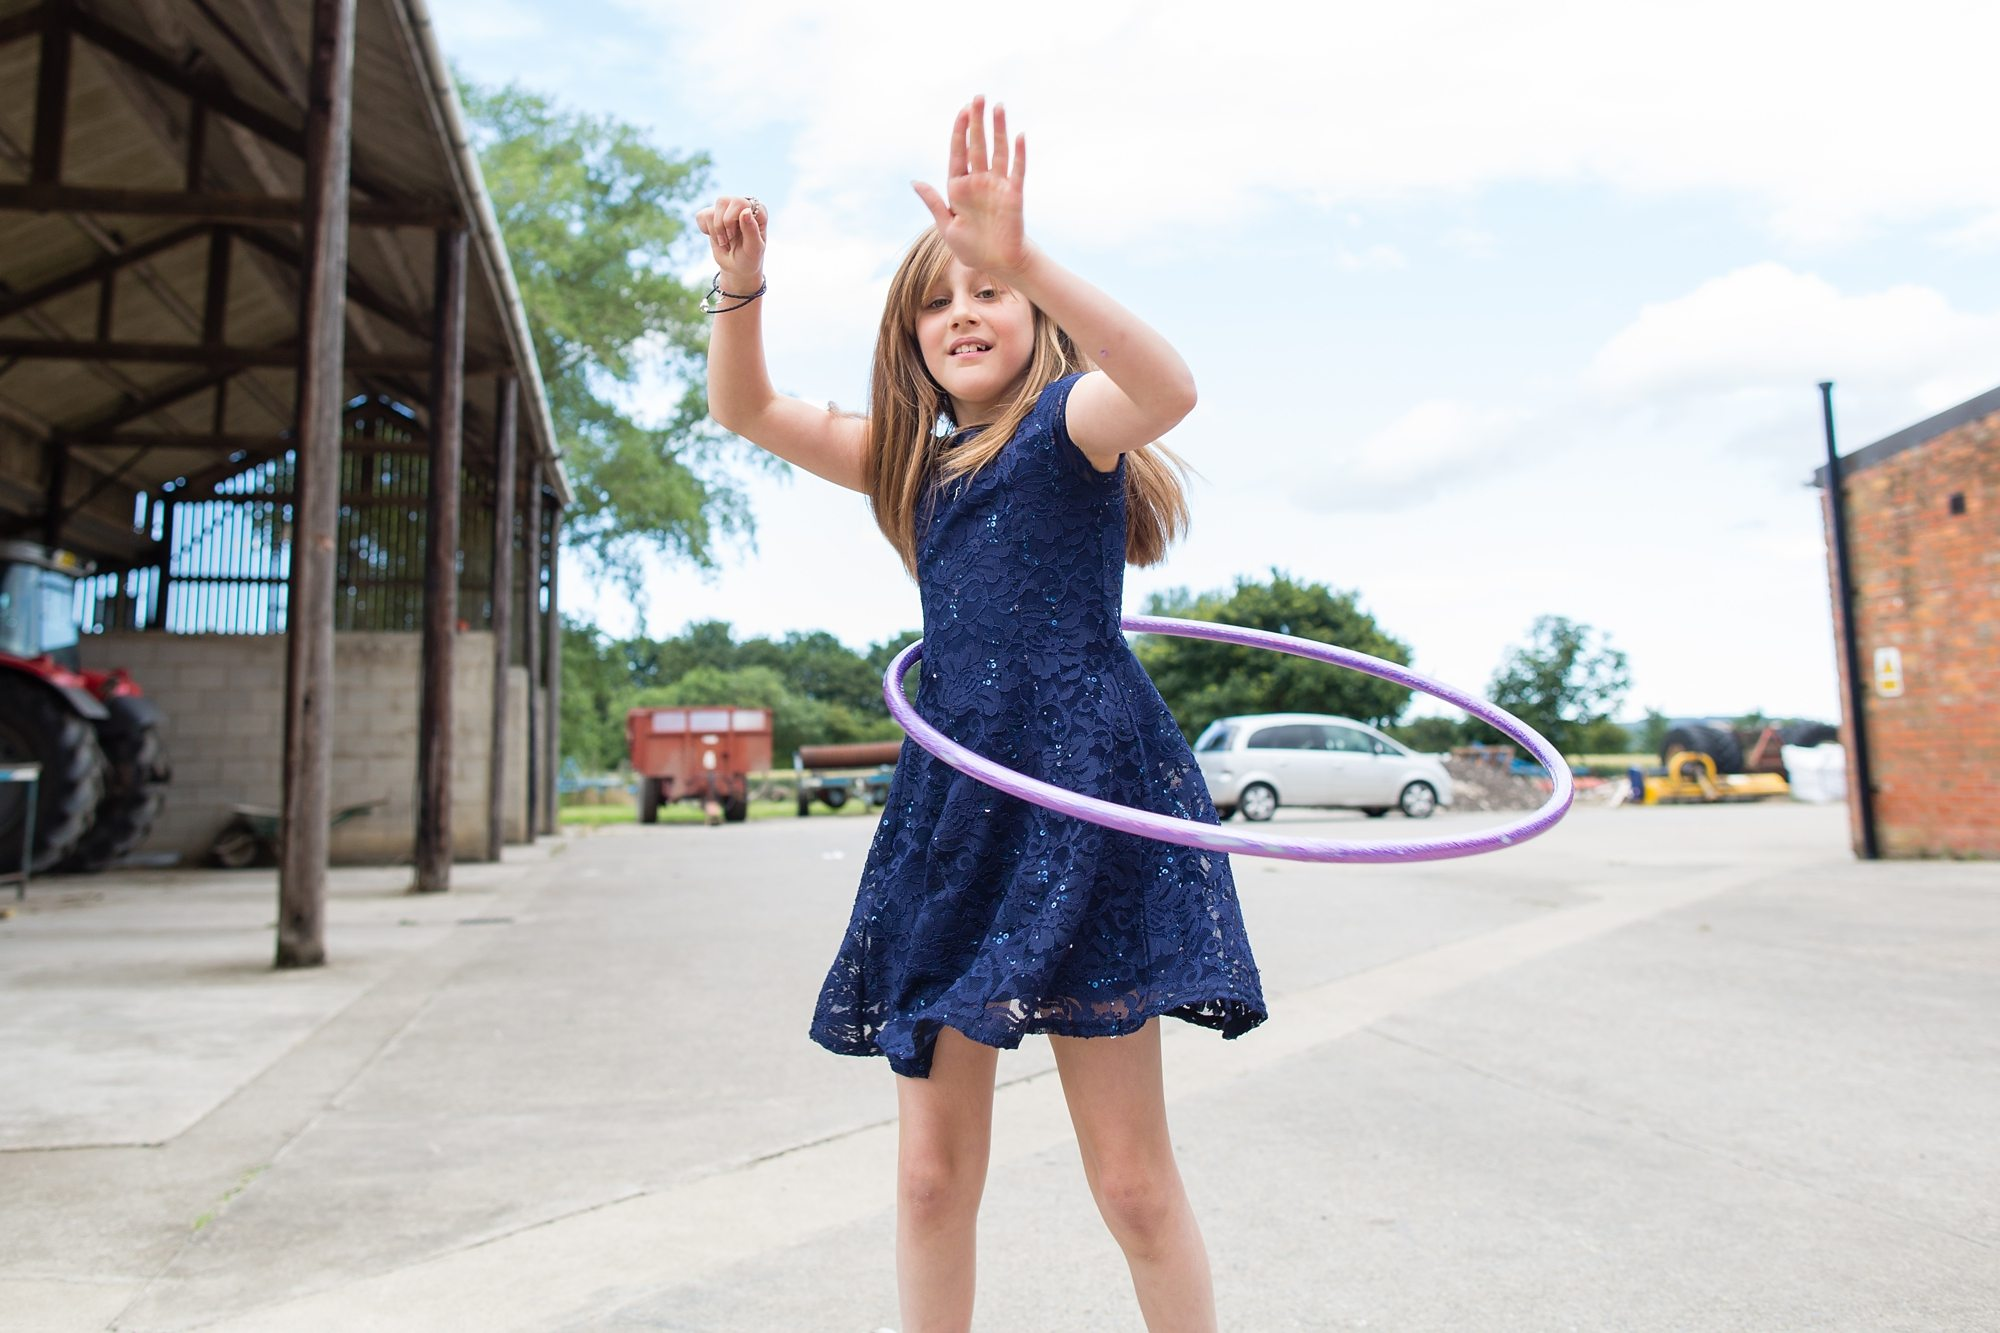 little girl wedding guest hula hooping in barn in carpark